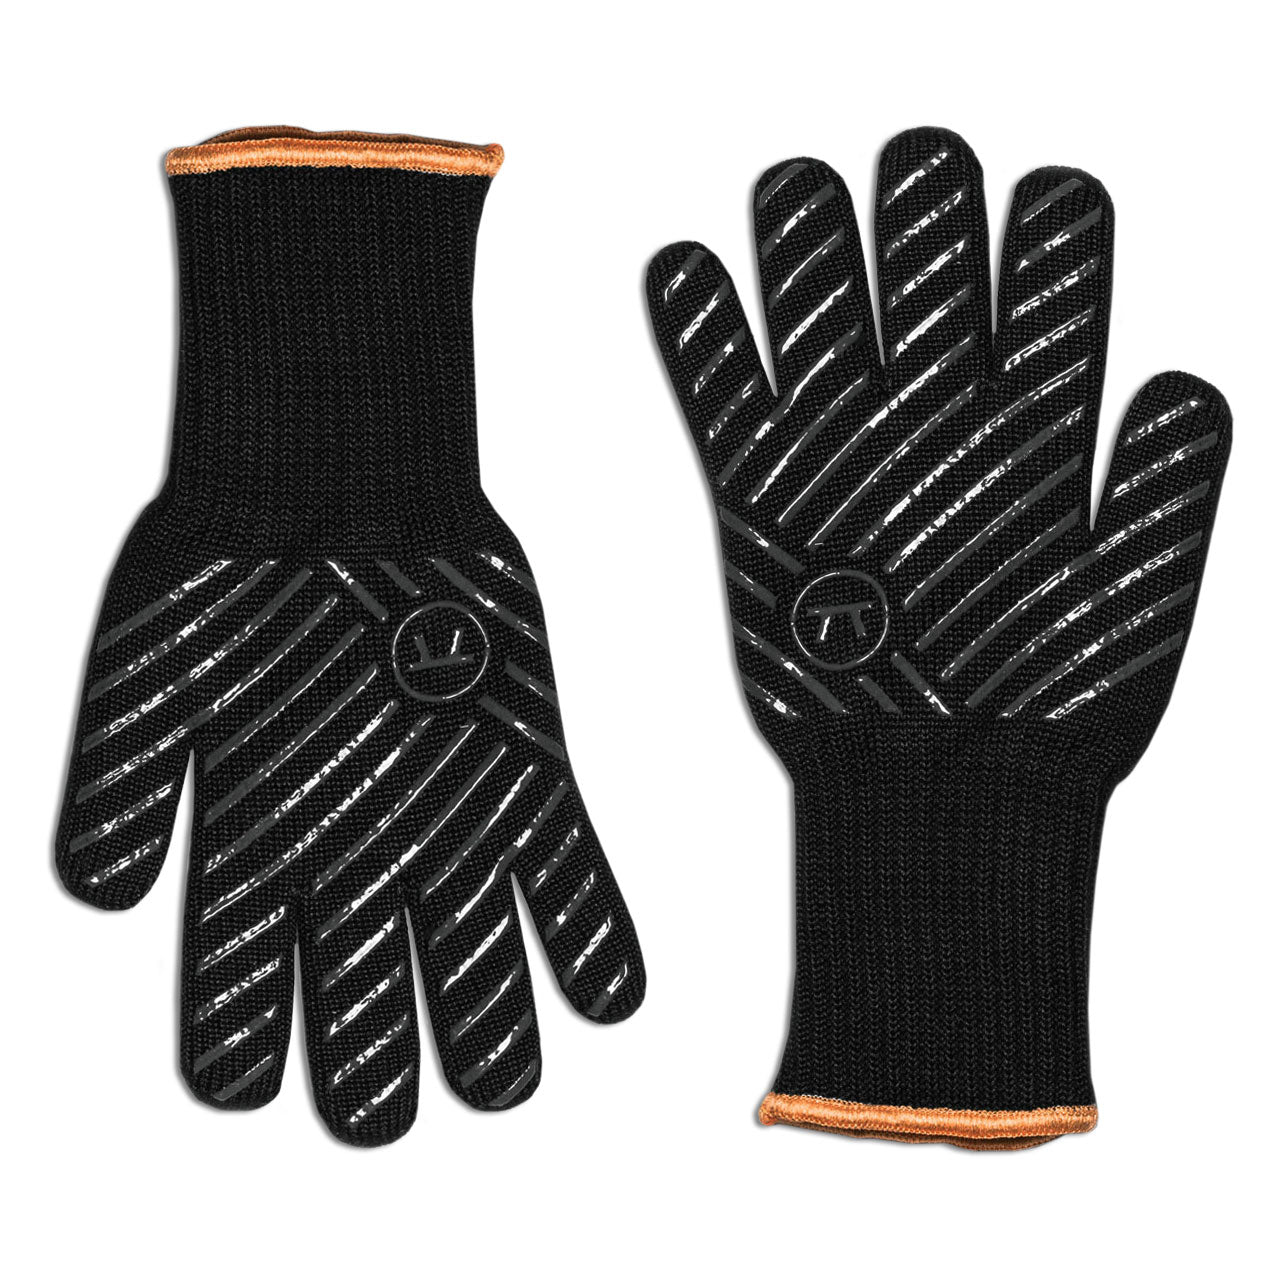 Outset Grill Gloves